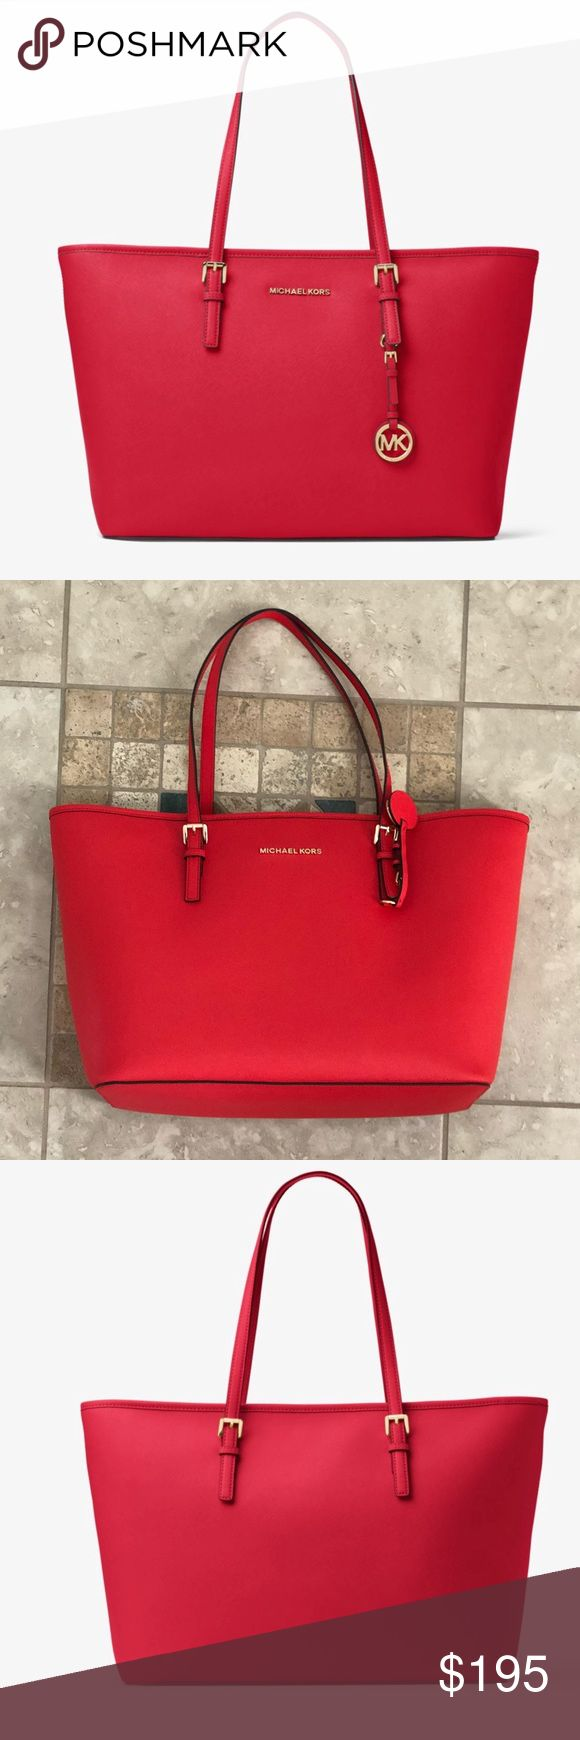 NWT Michael Kors Saffiano Leather Tote Red, L! NWT Michael Kors Saffiano Leather Tote Red. Large tote-style shoulder bag made of textured leather. Dual buckled shoulder s raps.Signature logo hardware and MK circle logo charm.Flat base to provide upright structure.back-wall zip pocket and multifunctional slip pockets.Monogram lining.Imported. Michael Kors Bags Totes